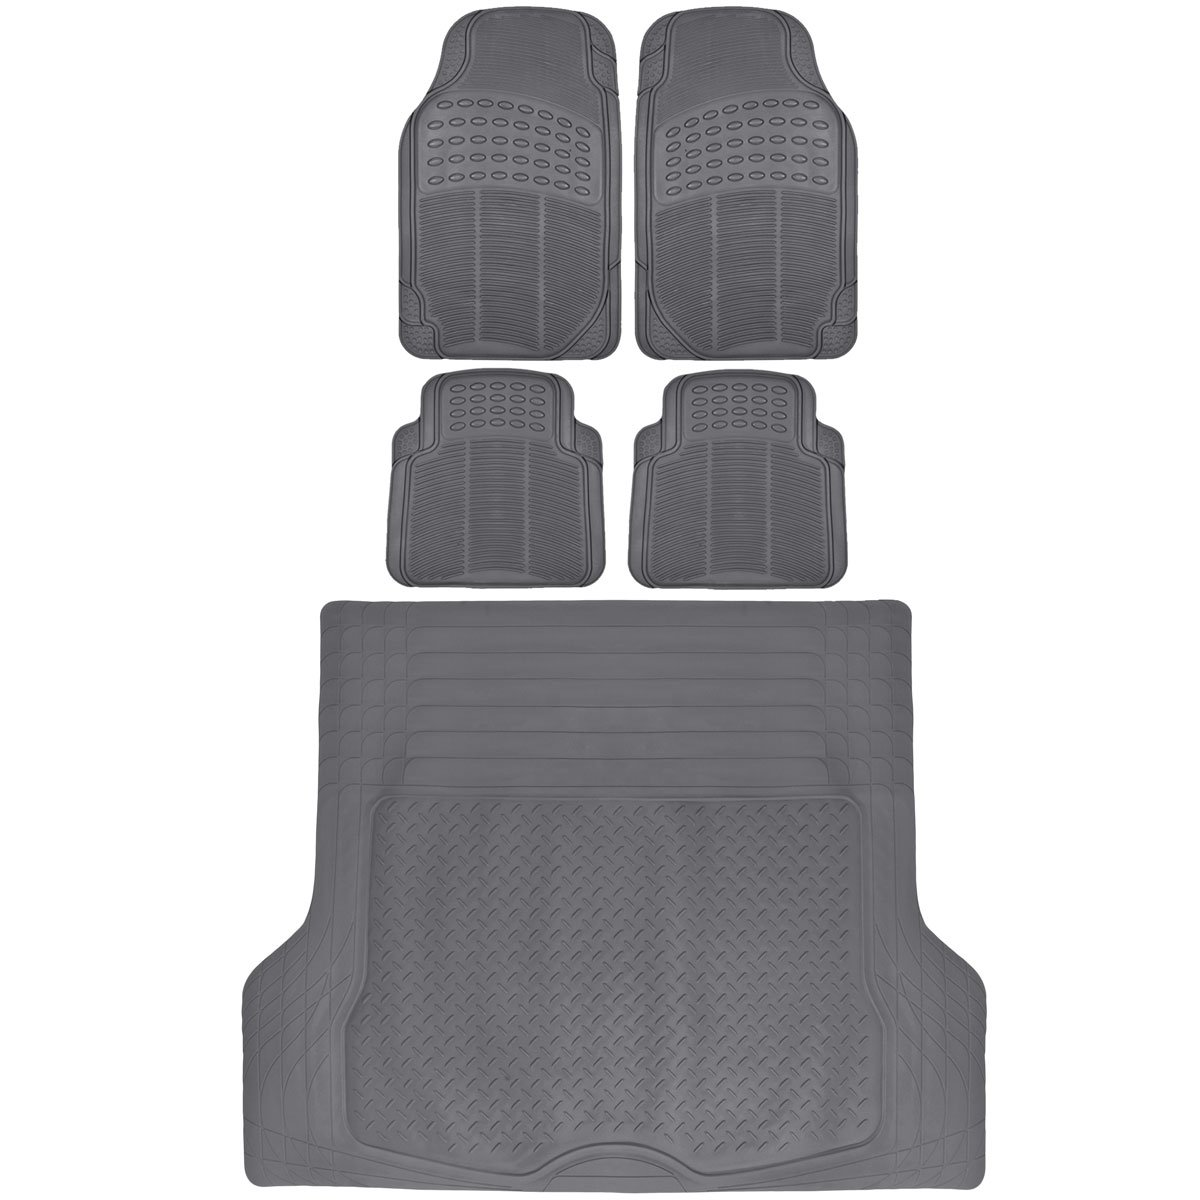 BDK Gray Cargo Rubber Car Floor Mats All Weather Heavy Duty Set 5 pcs